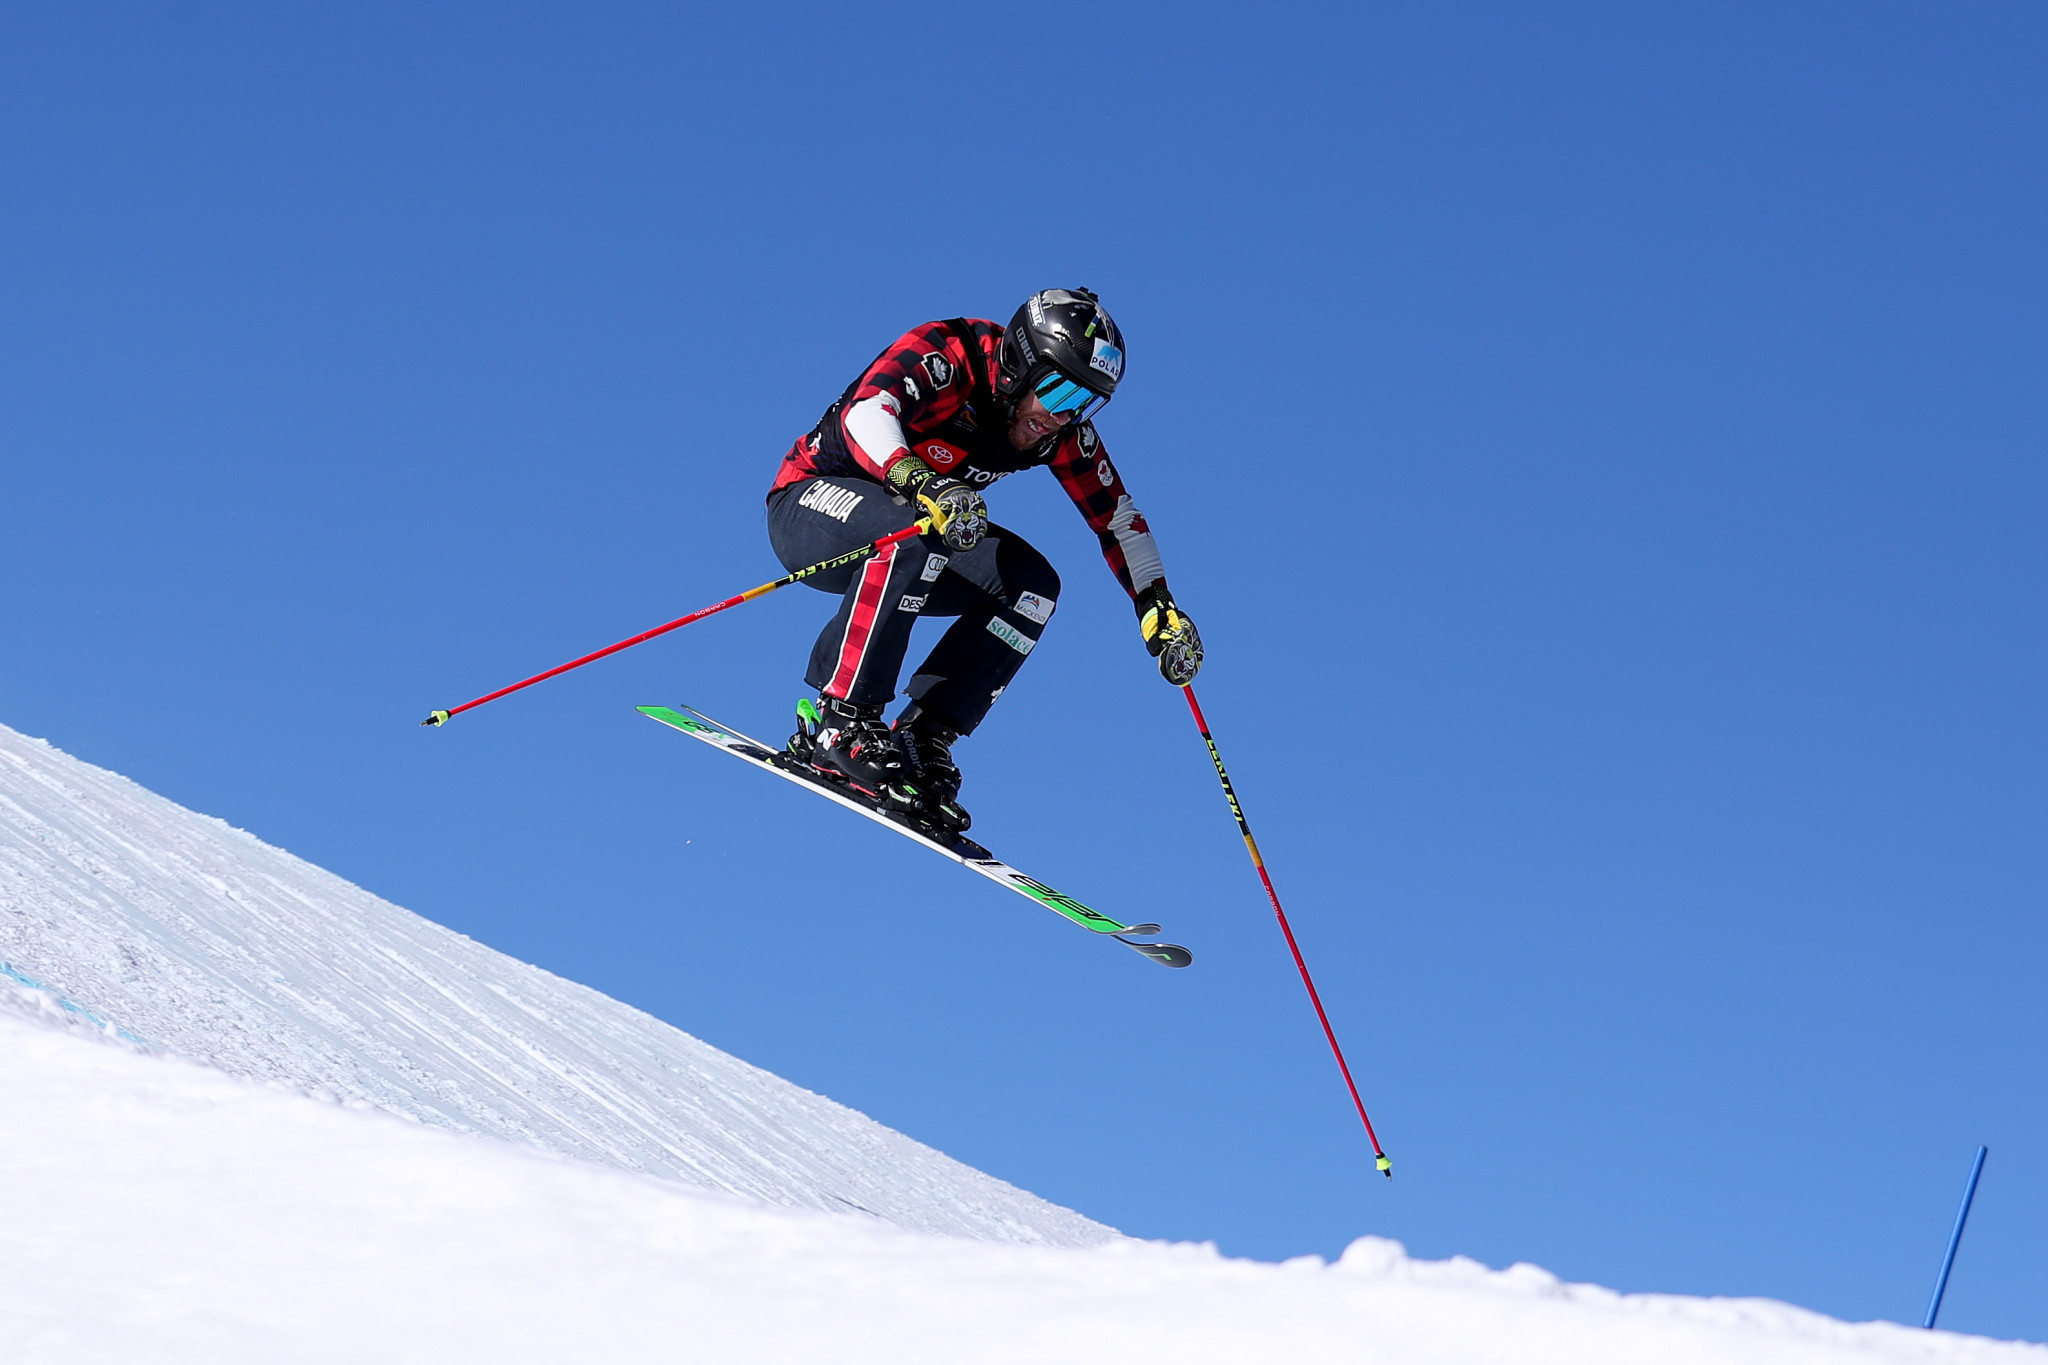 Kevin Drury of Canada topped qualifying in the men's competition ©Getty Images